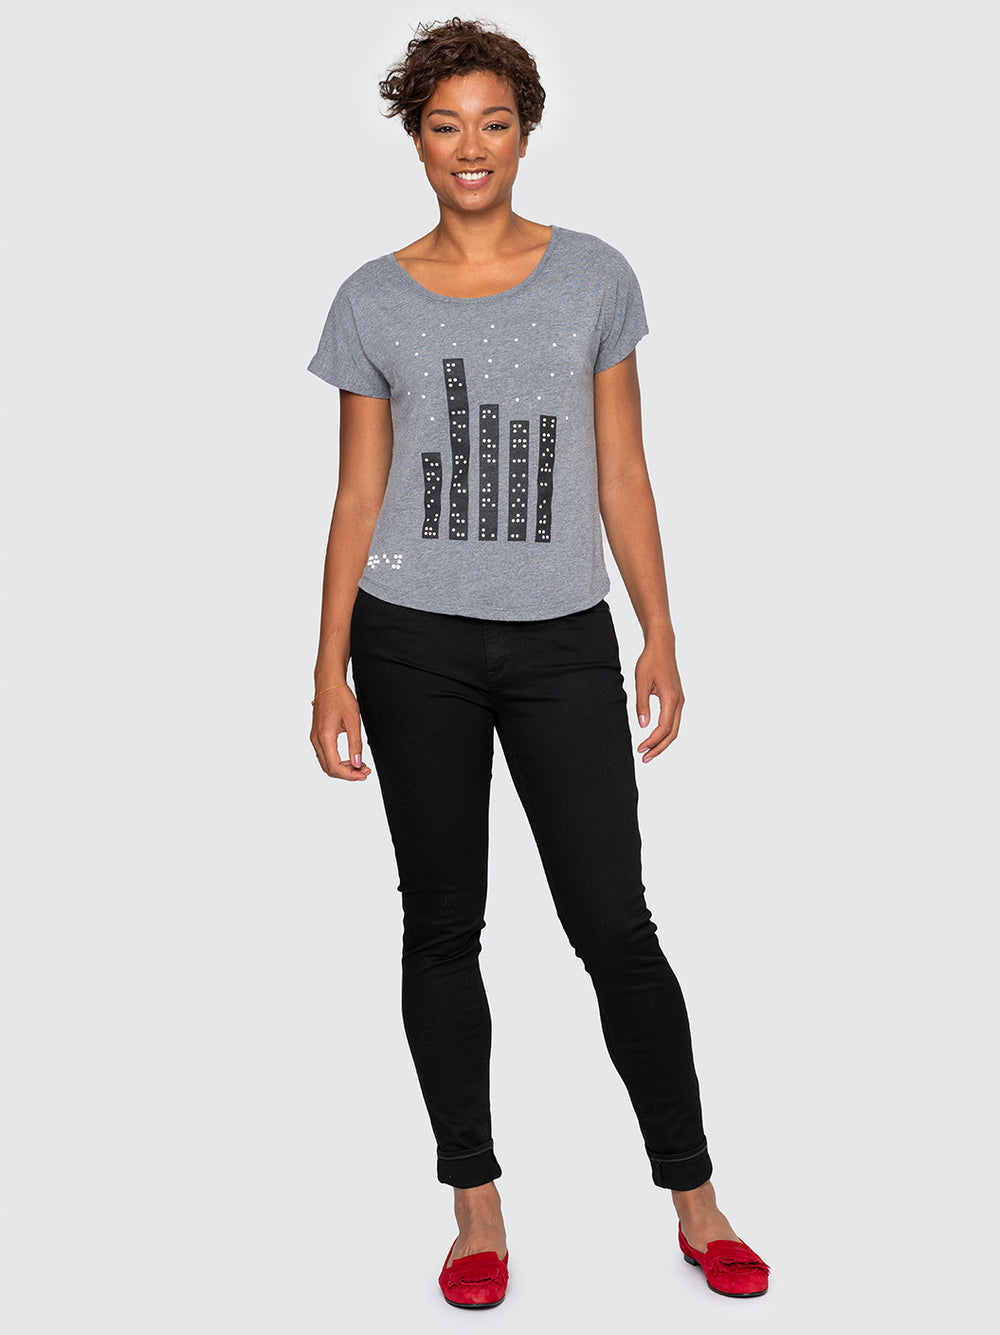 Two Blind Brothers - Womens NYC Skyline Graphic Dolman Hover